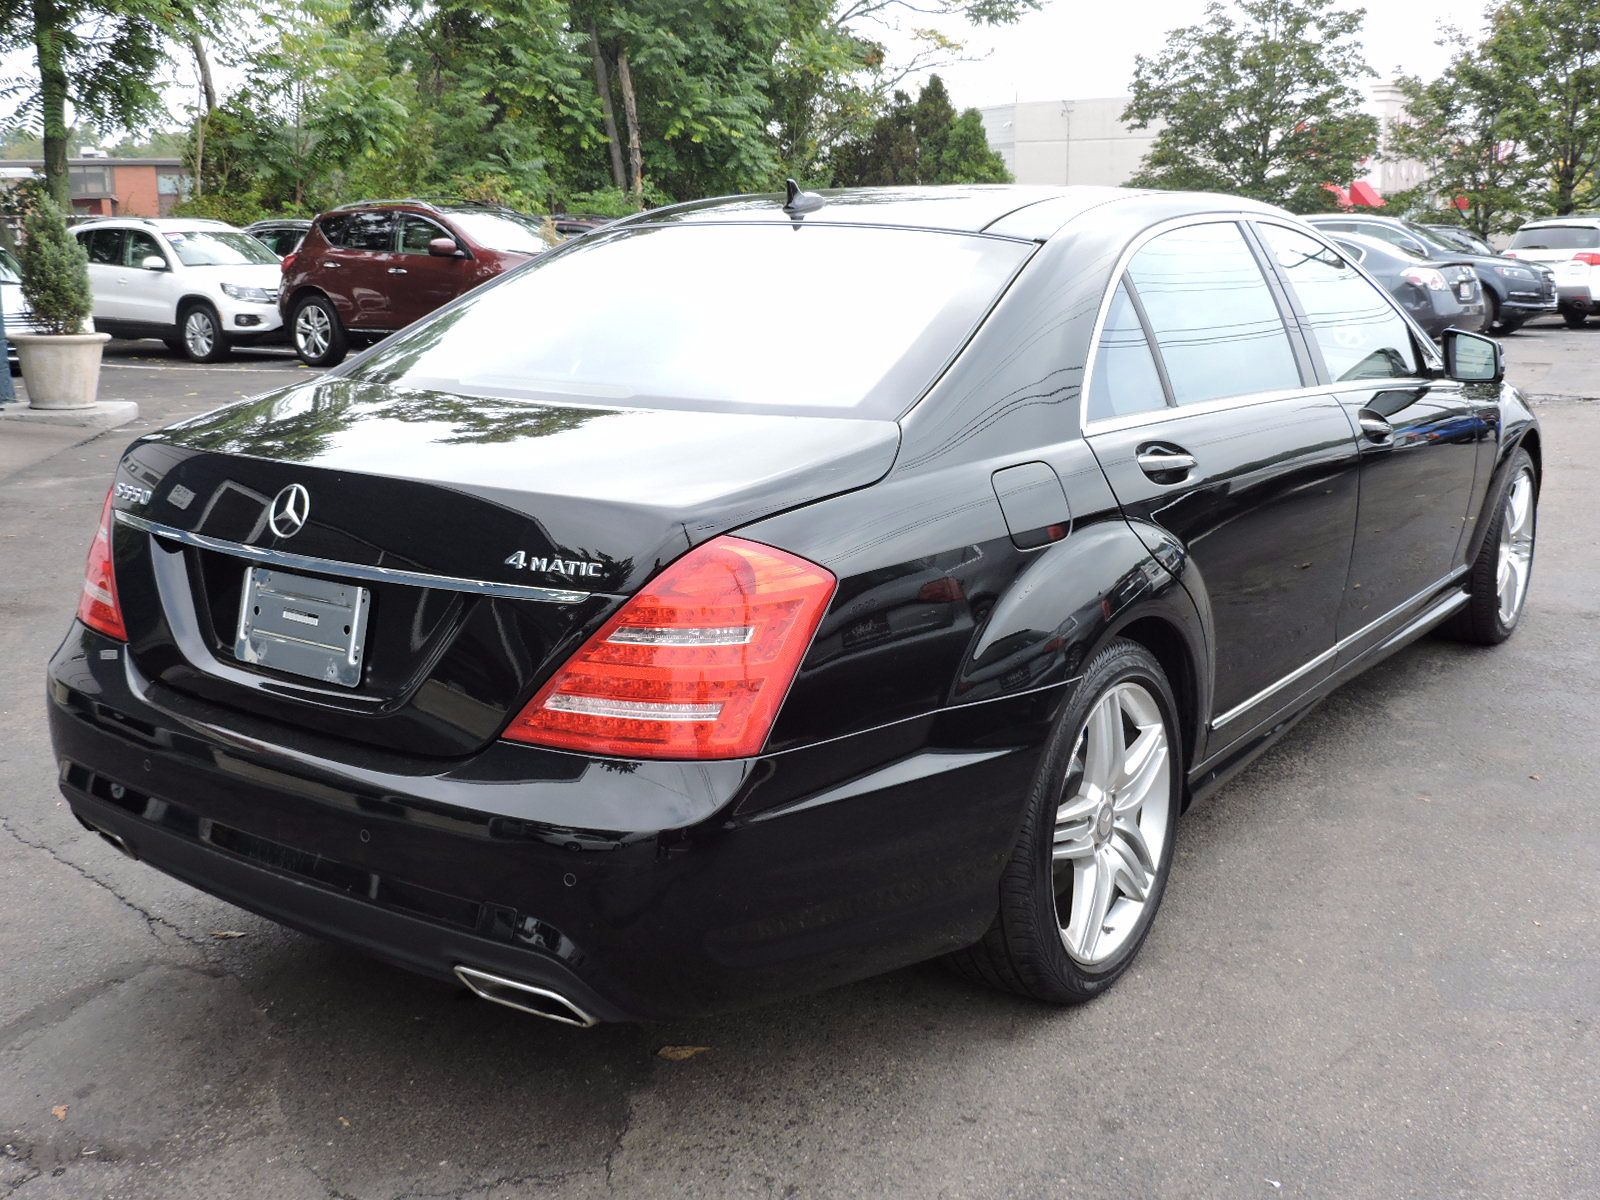 2013 Mercedes-Benz S 550 - 4Matic - All Wheel Drive - Navigation